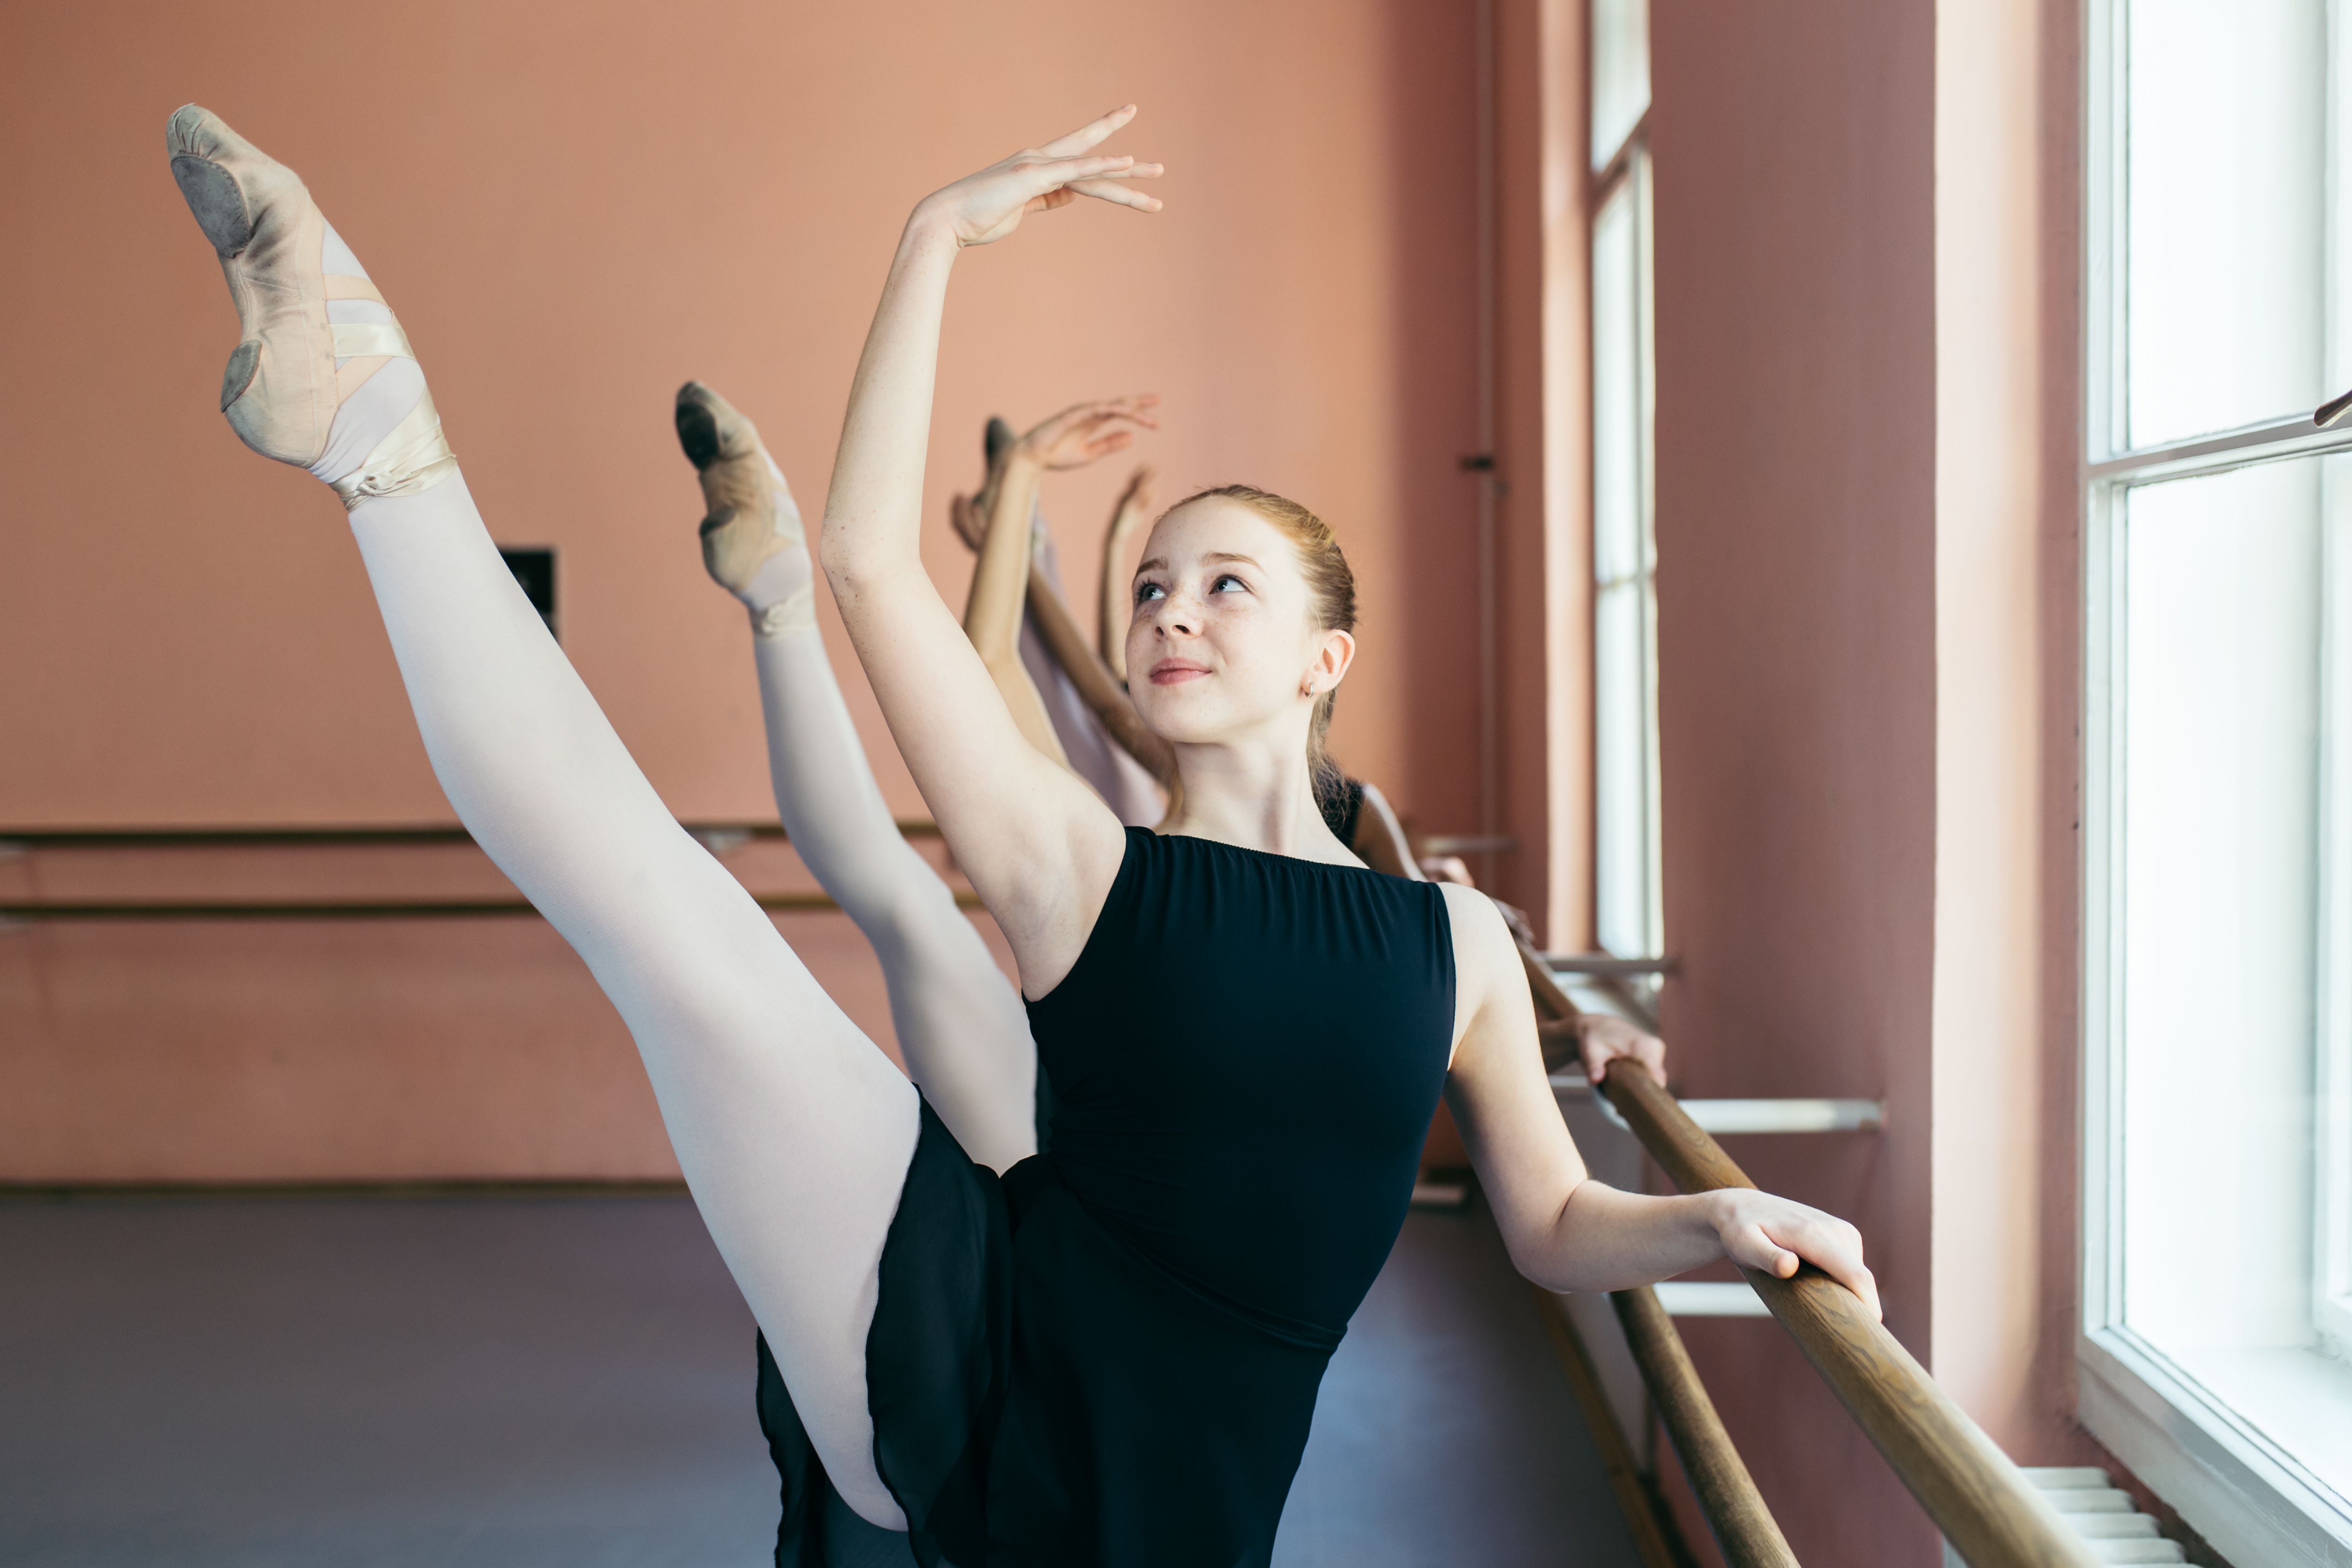 Dance Blog: Why Is It So Hard For Dancers To Find A Good Healthcare Provider? Part 2